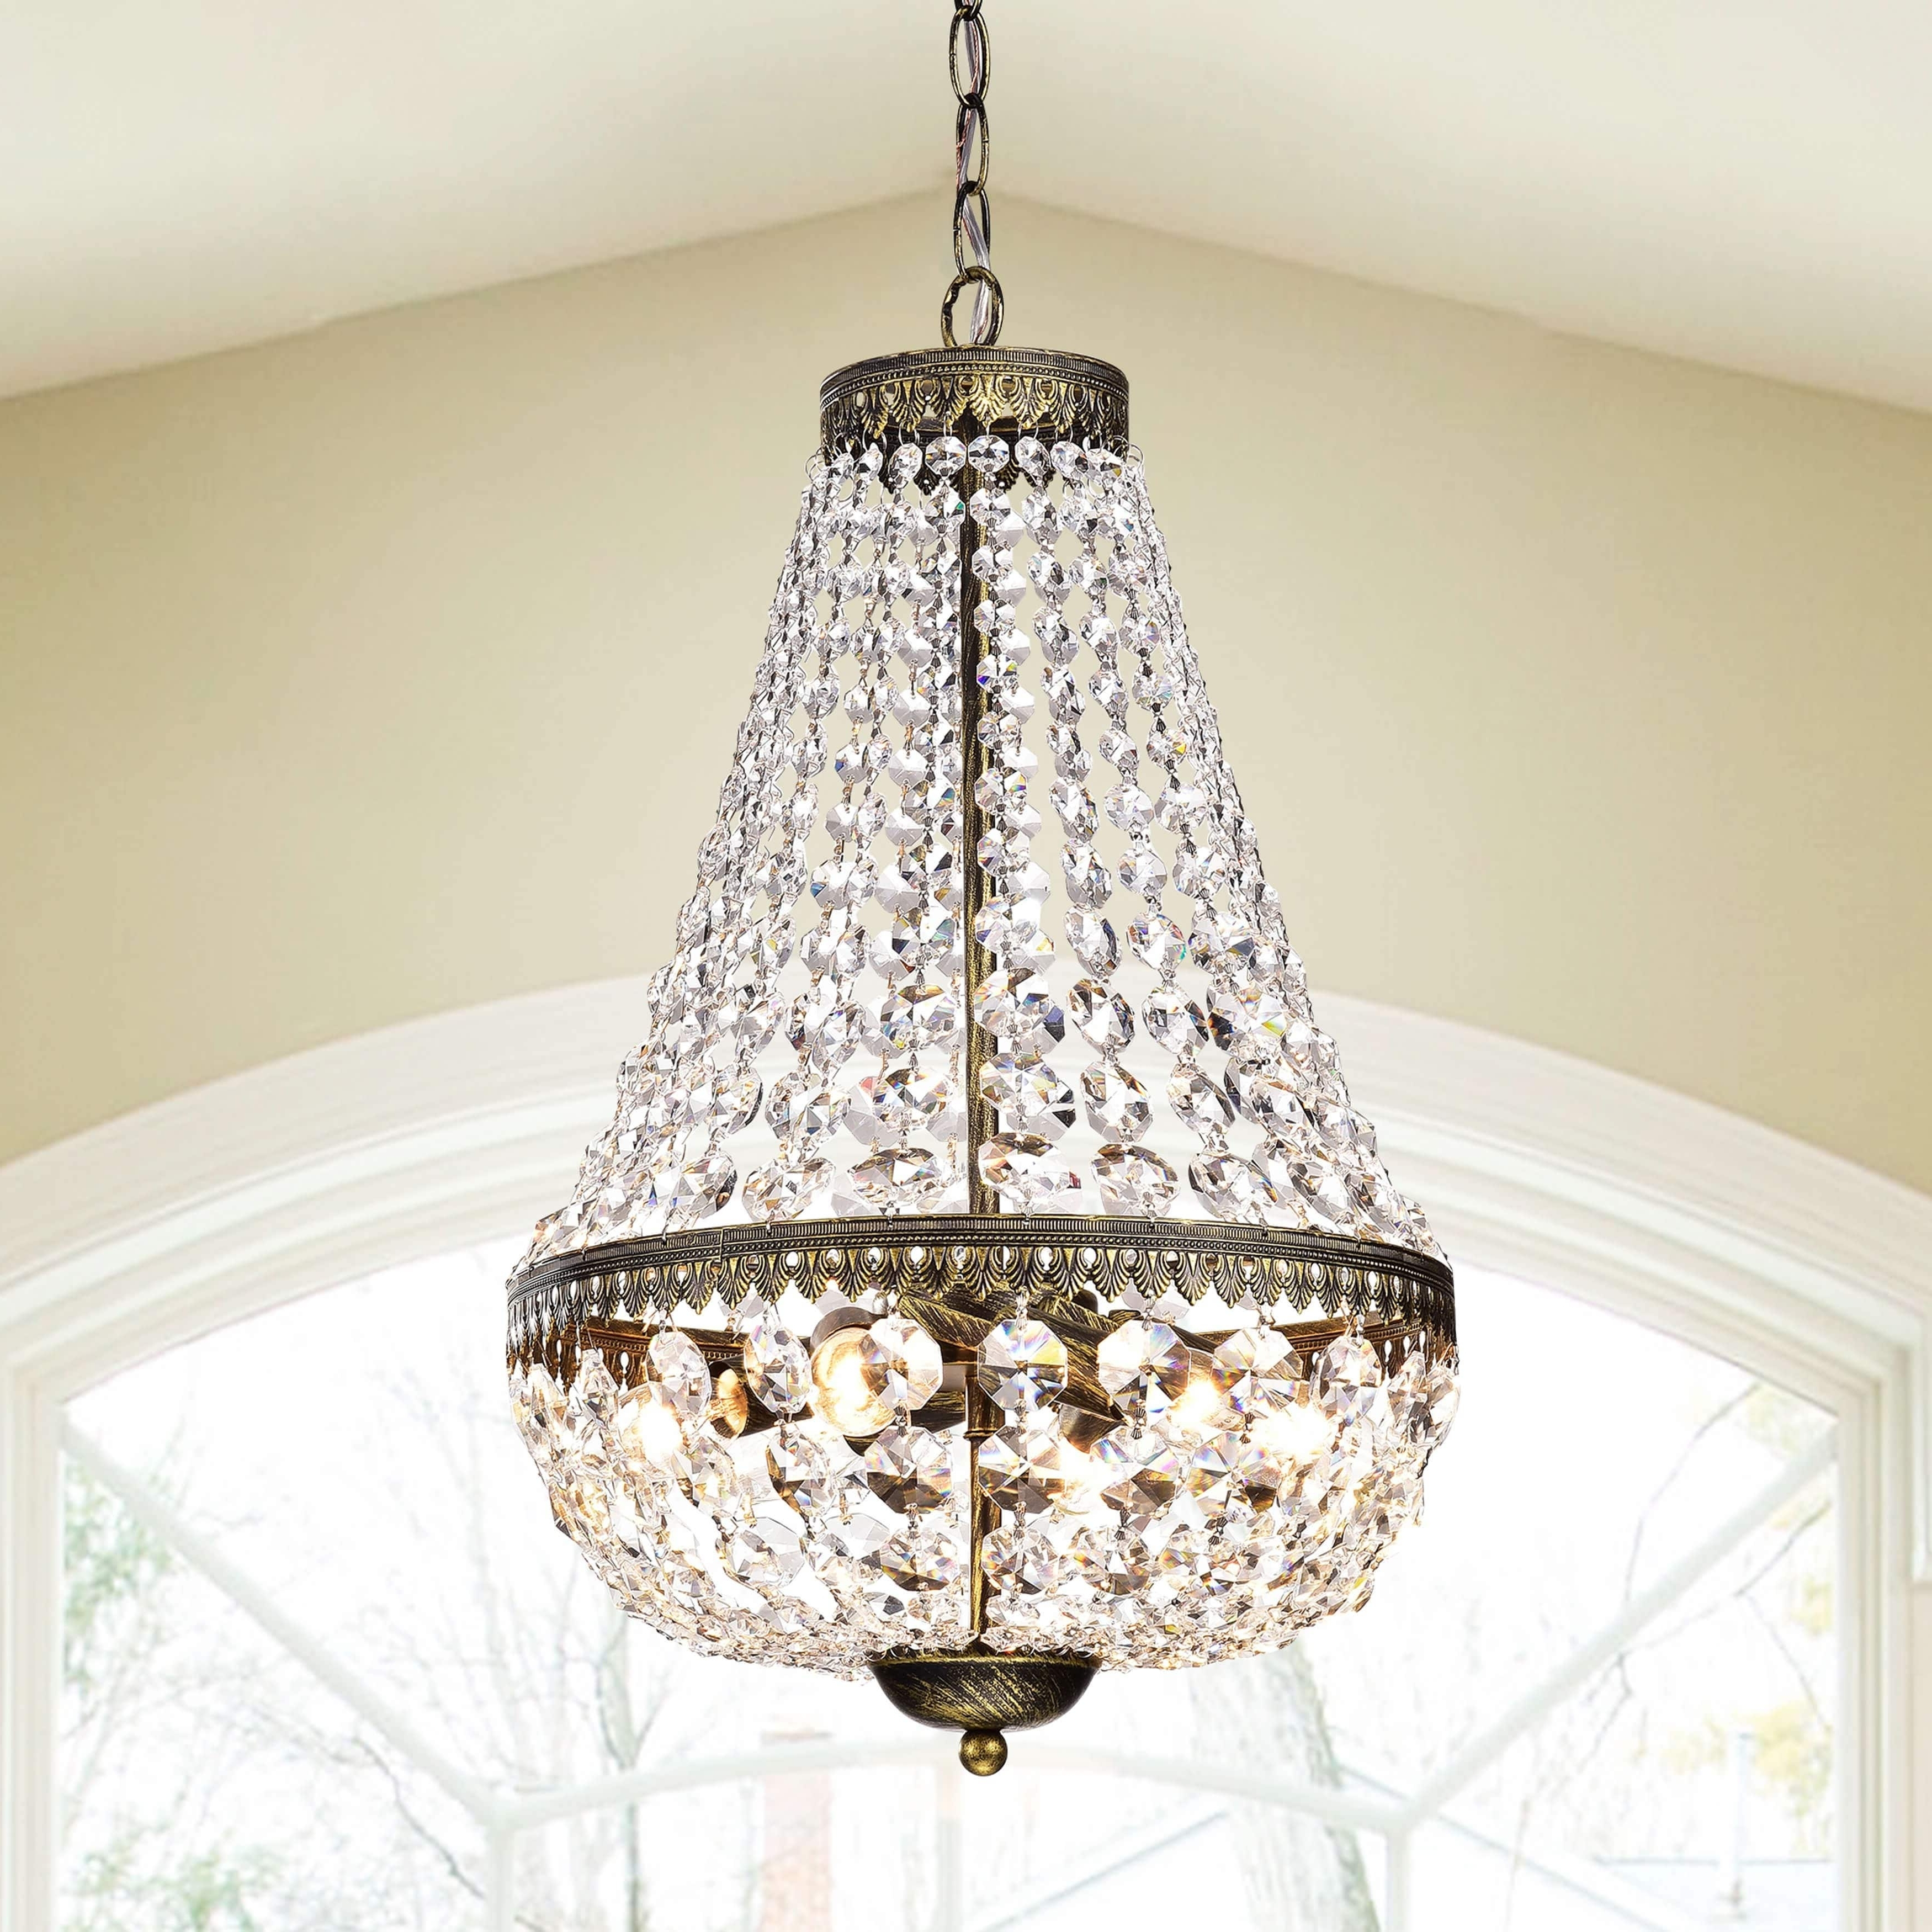 Copper Grove Sagano Symmetric 6 Light Antique Copper Chandelier Within Preferred Copper Chandeliers (View 7 of 20)